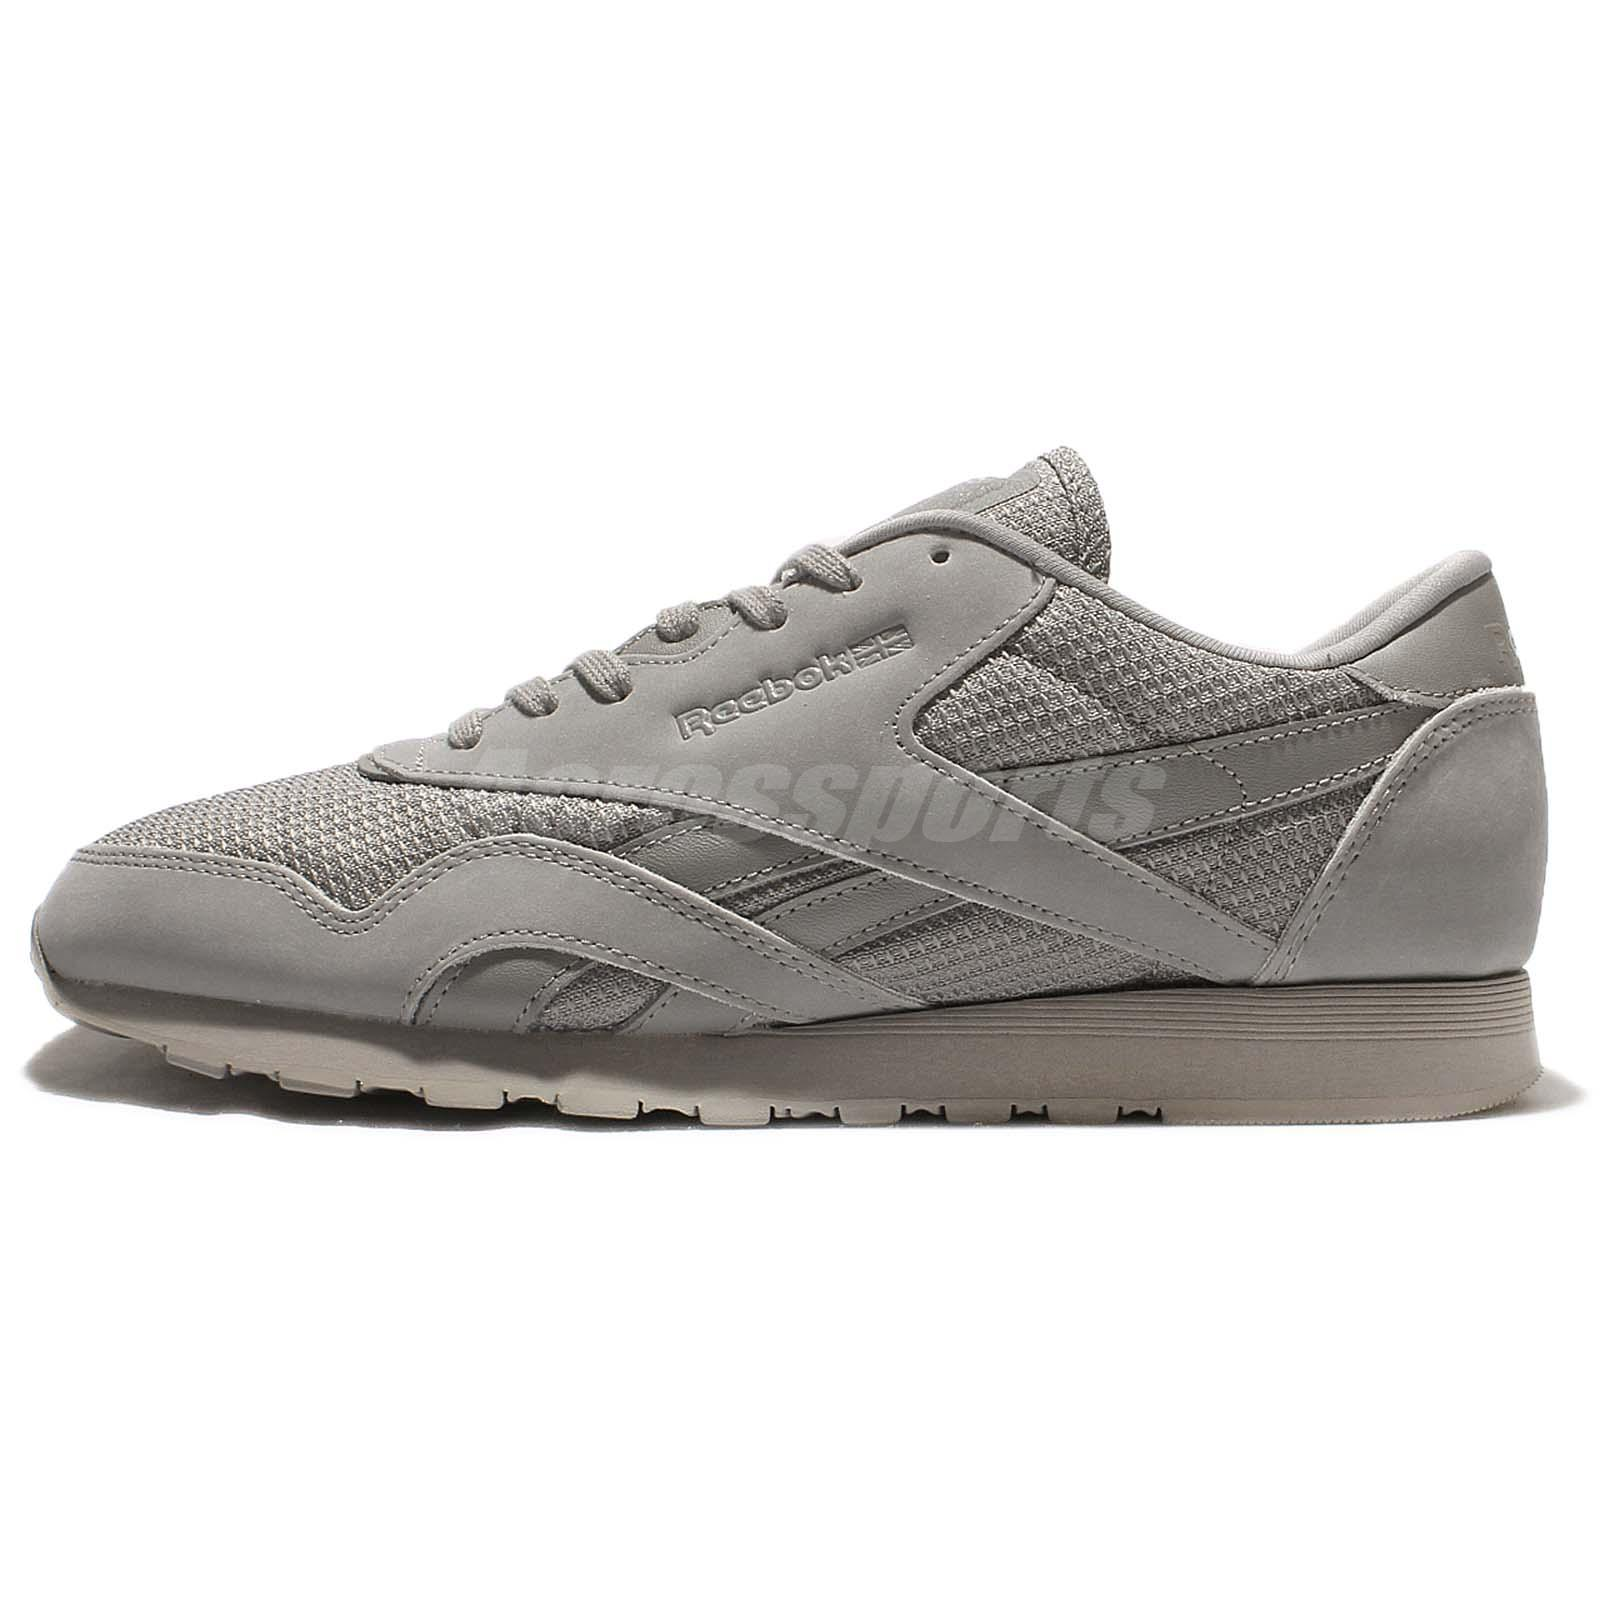 Reebok CL Nylon ST Flat Grey Men Casual Shoes Classic Sneakers Trainers BD1343